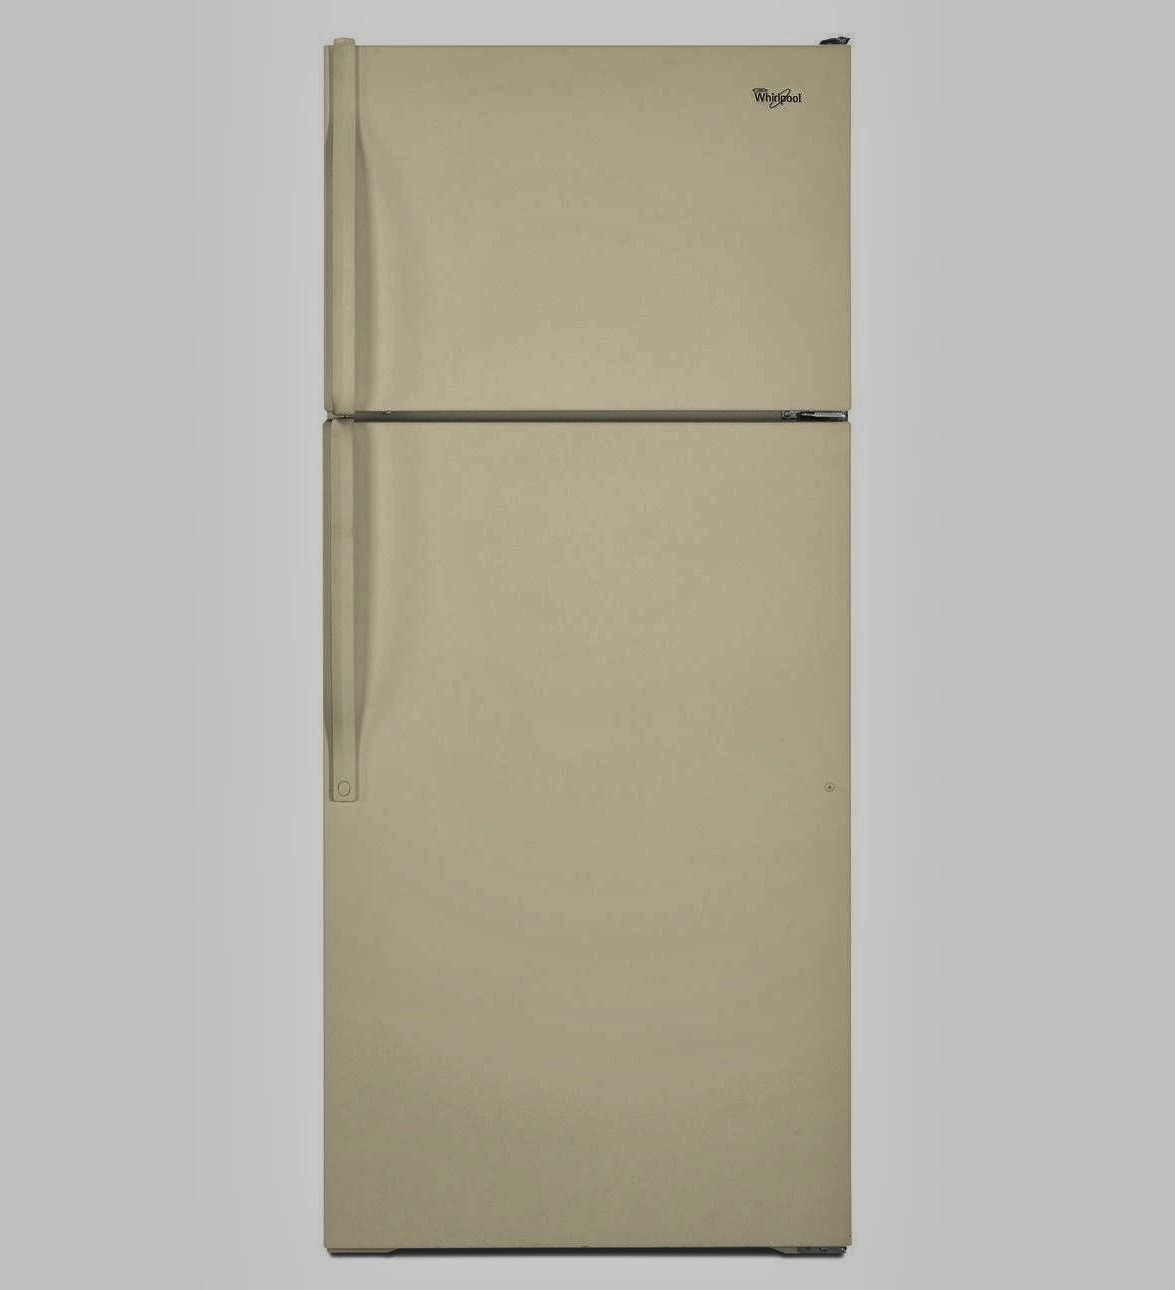 Bottom Freezer Refrigerator Bisque Color Pictures